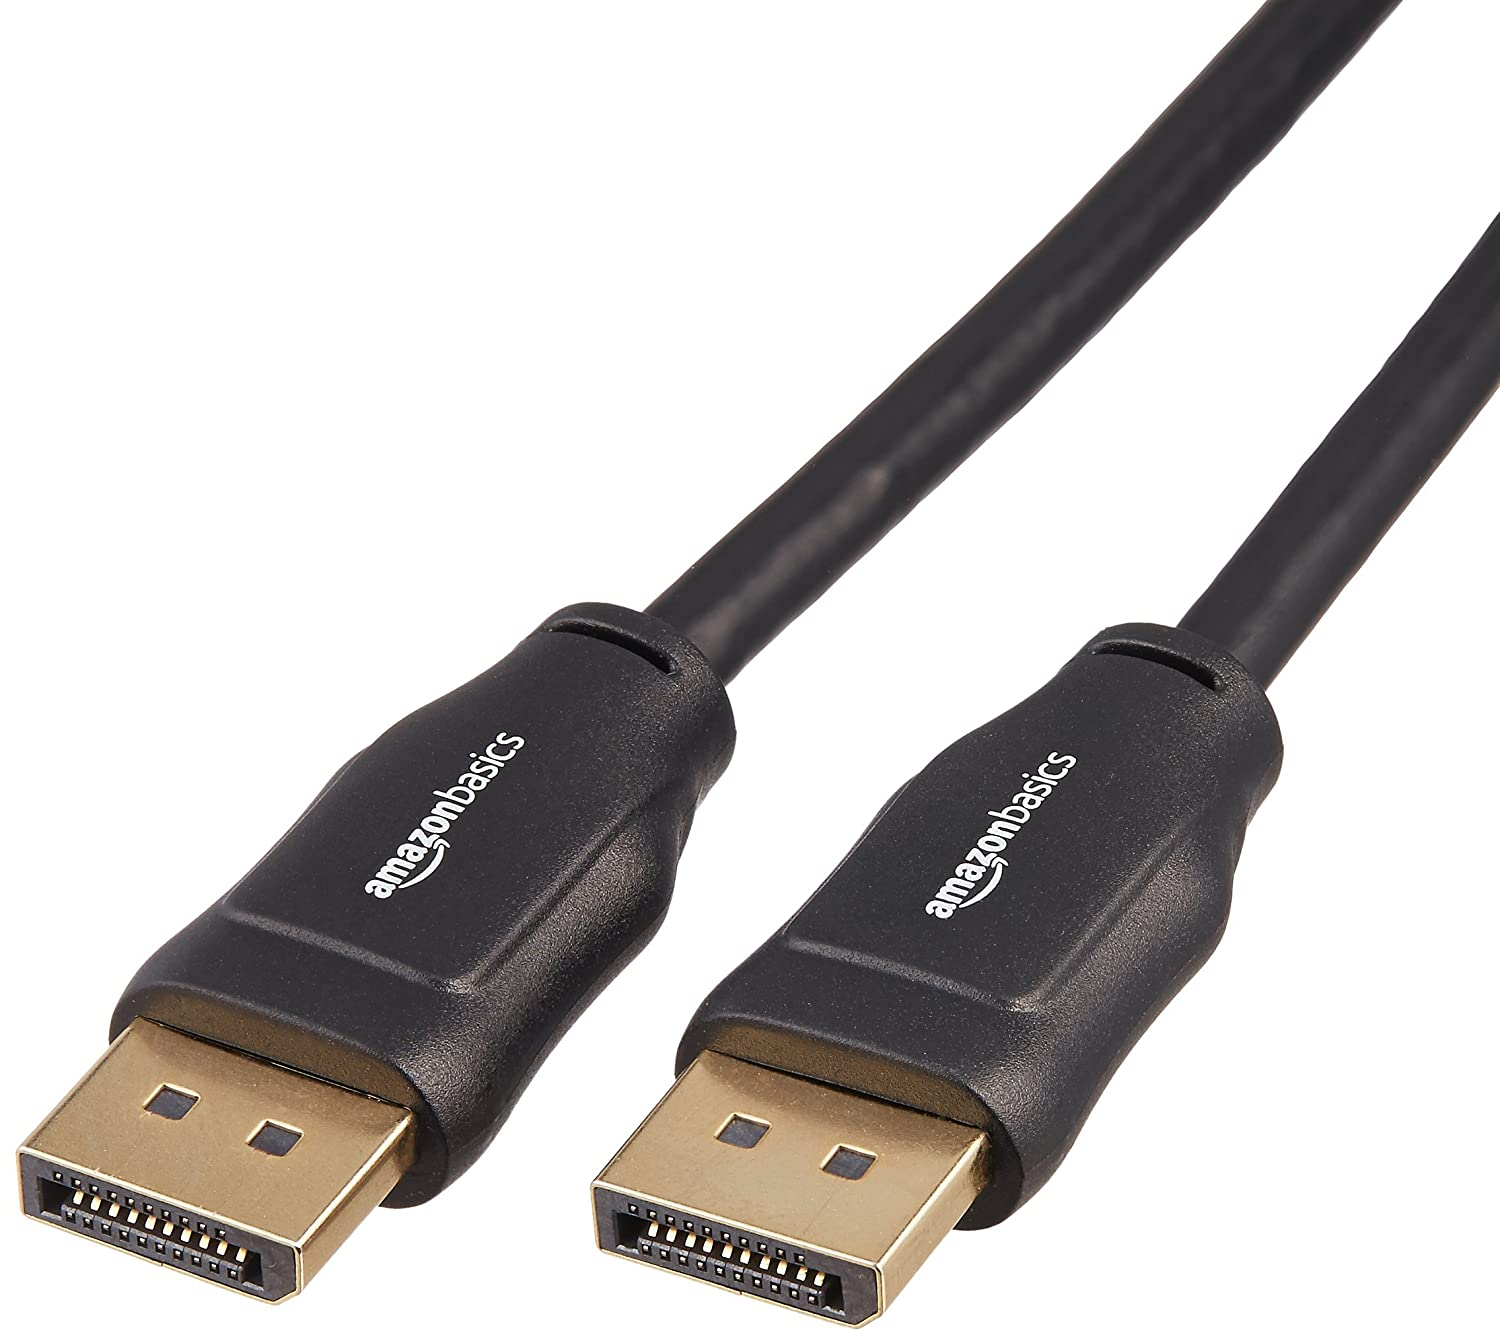 DisplayPort to DisplayPortケーブル 3m バージョン1.2